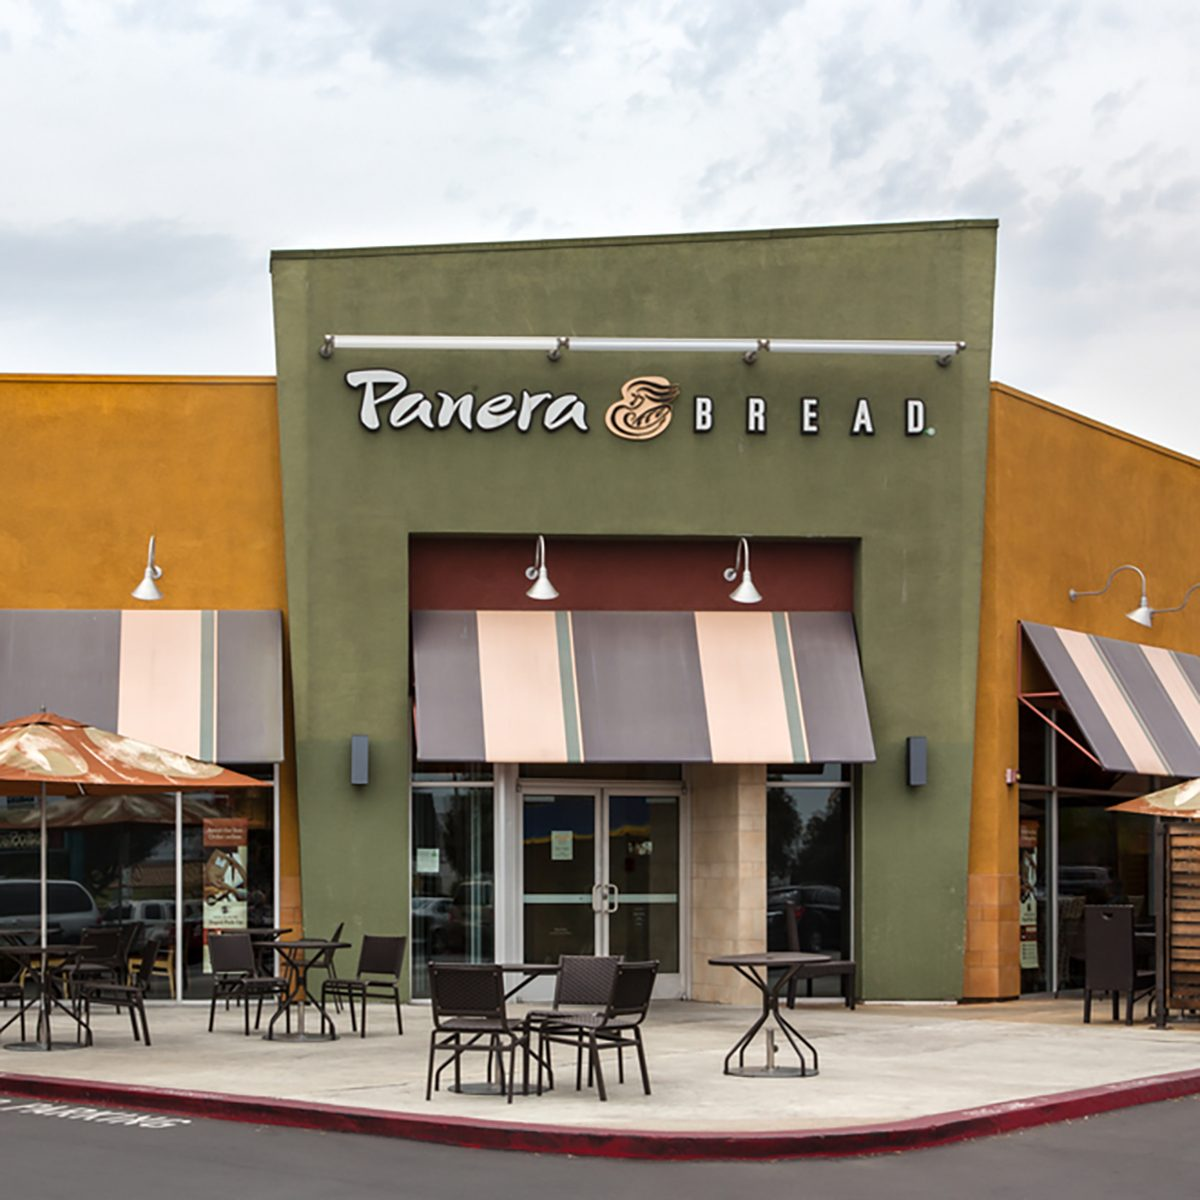 Panera Bread restaurant exterior. Panera Bread is a chain of bakery-casual restaurants in the United States and Canada